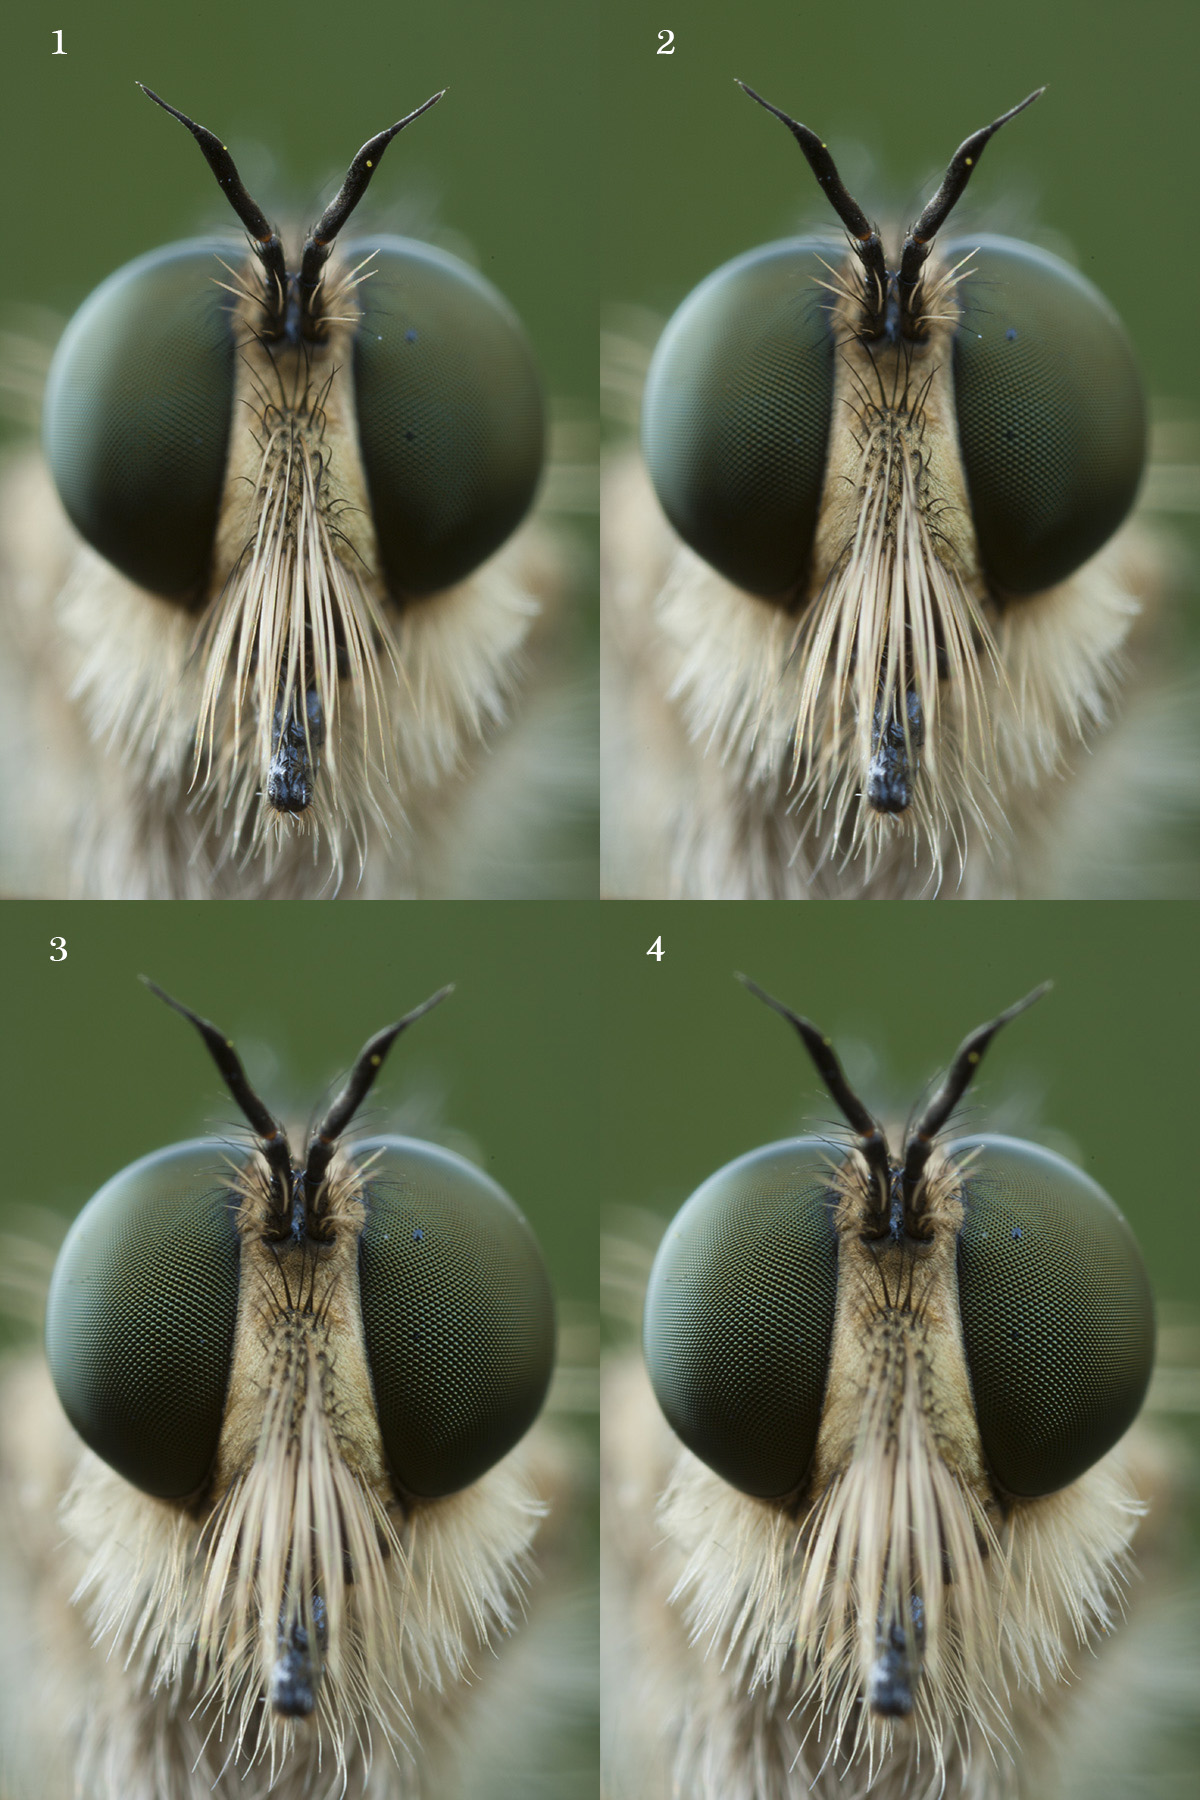 four images of a robber fly I'd like to focus stack. All shot at 1.3sec, ISO 100, f/10.